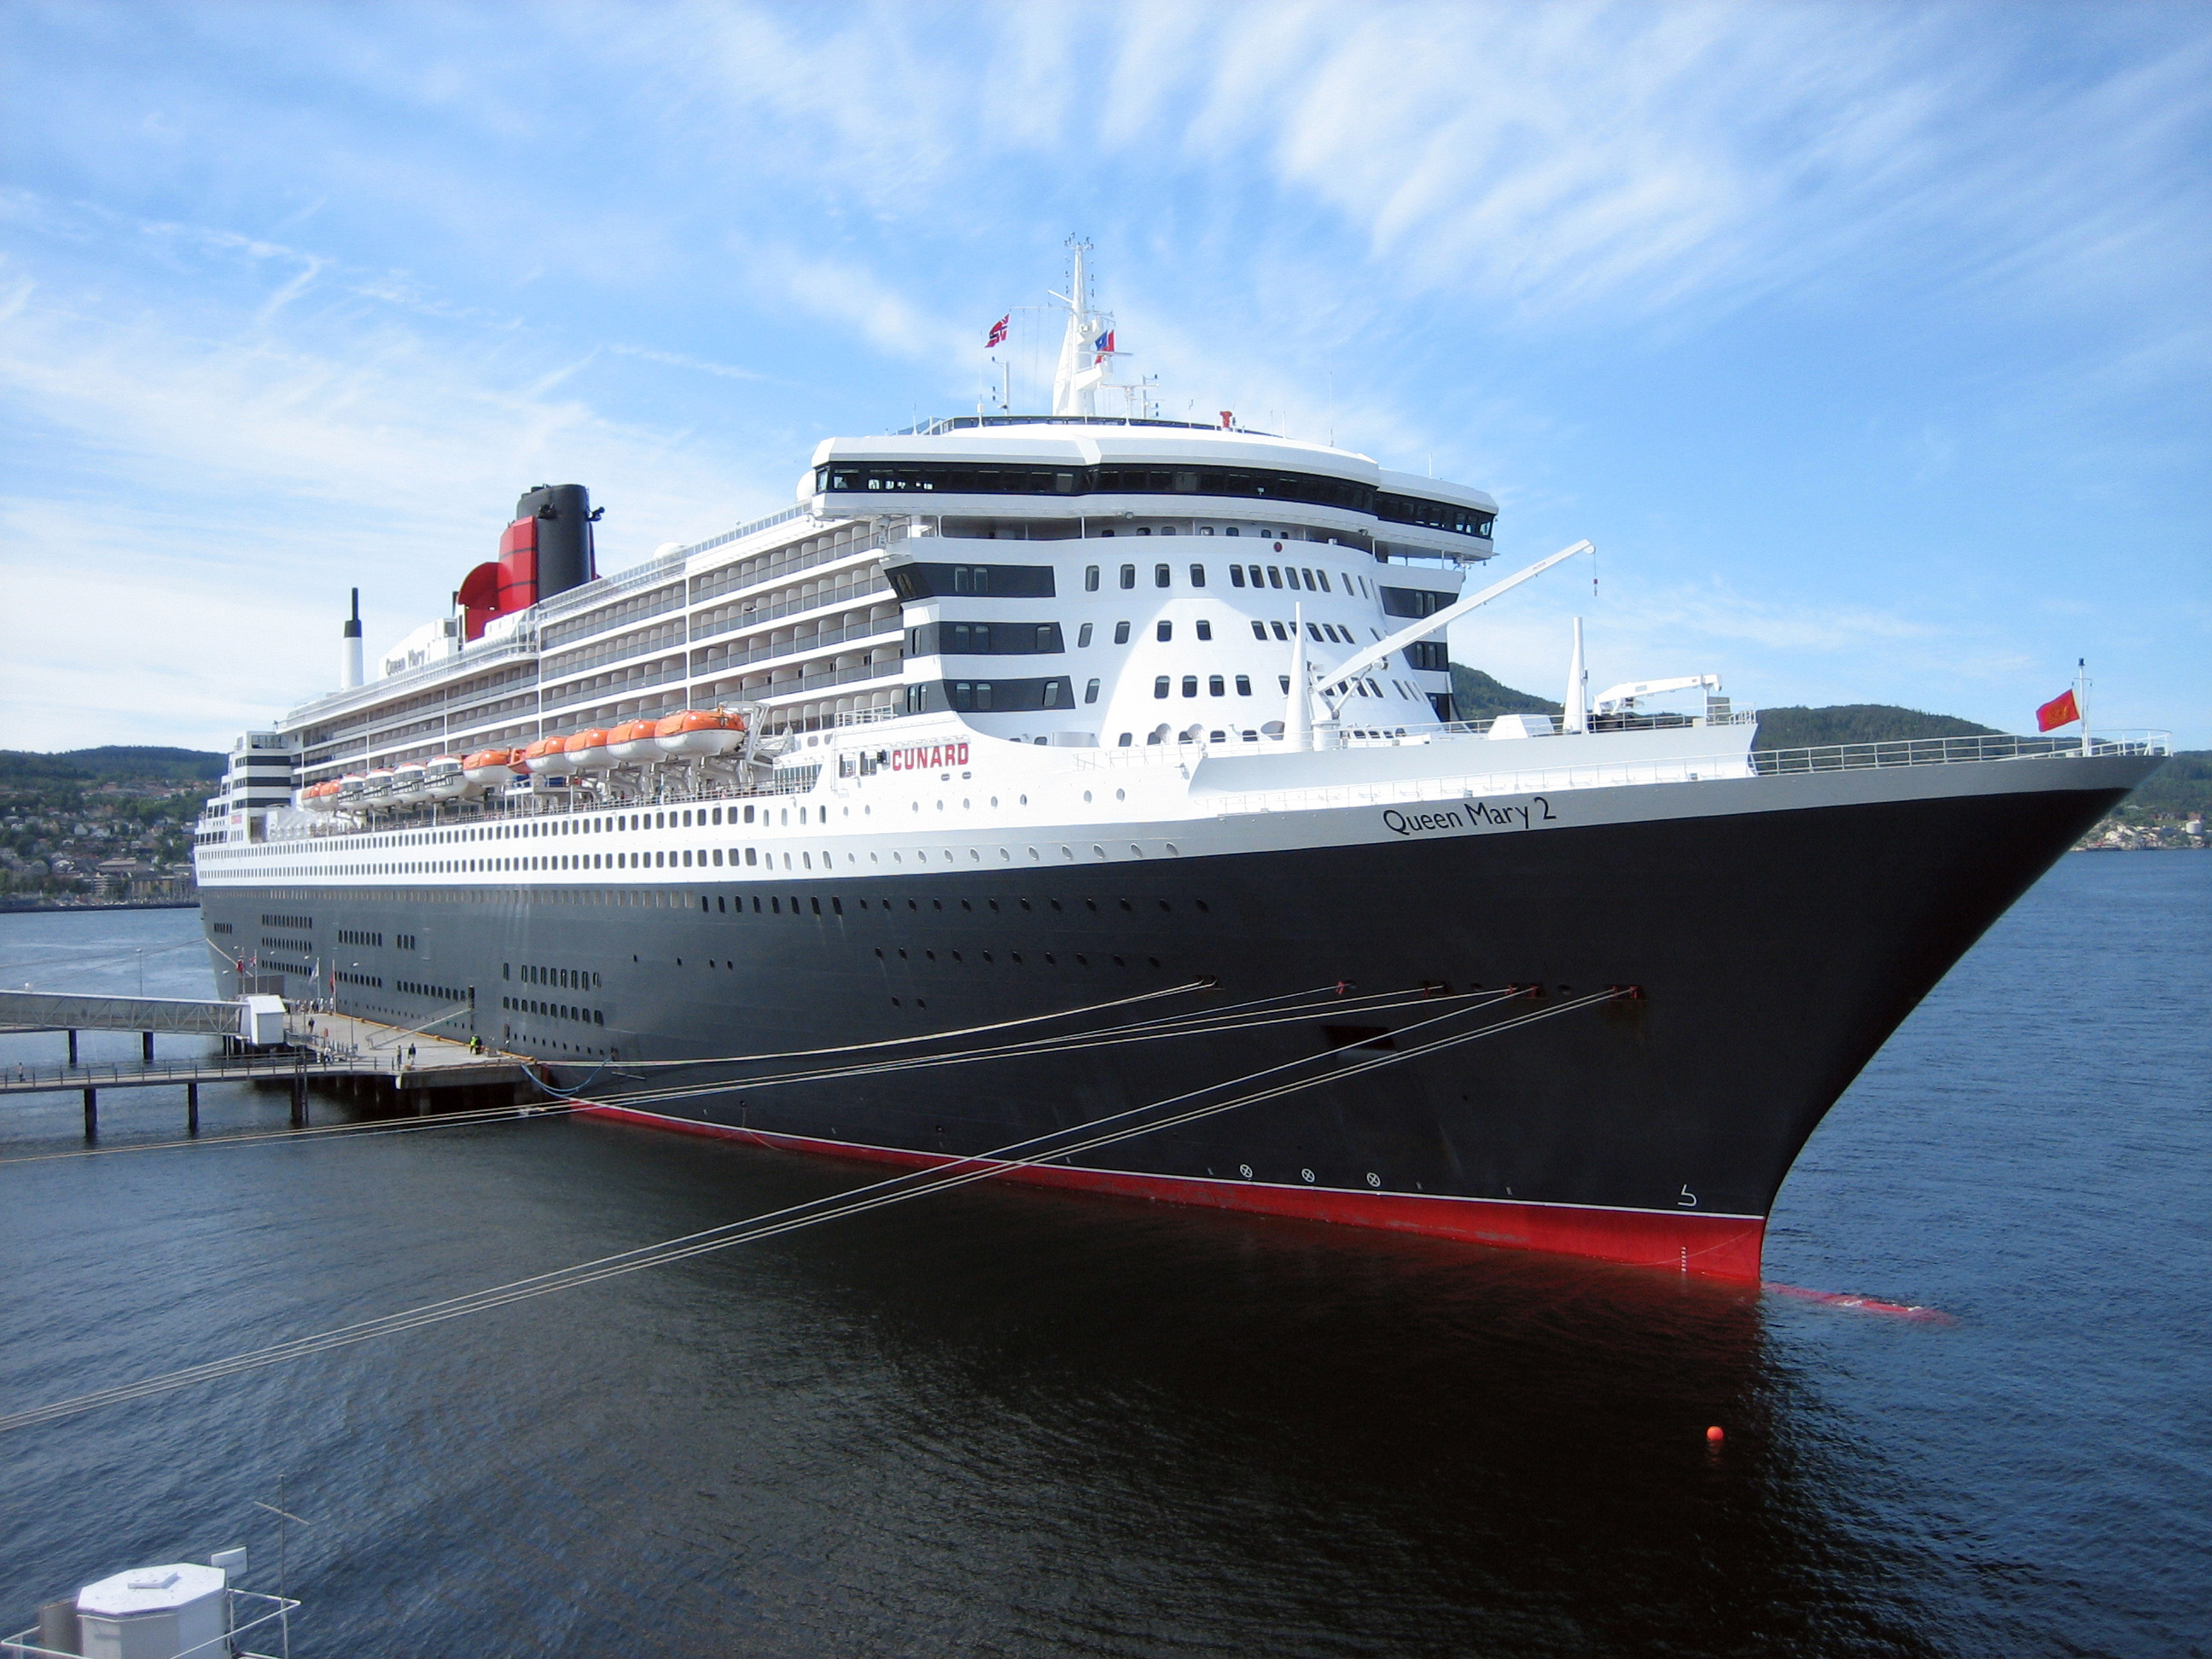 Queen Mary 2 moored at Trondheim, Norway on June 20, 2007.